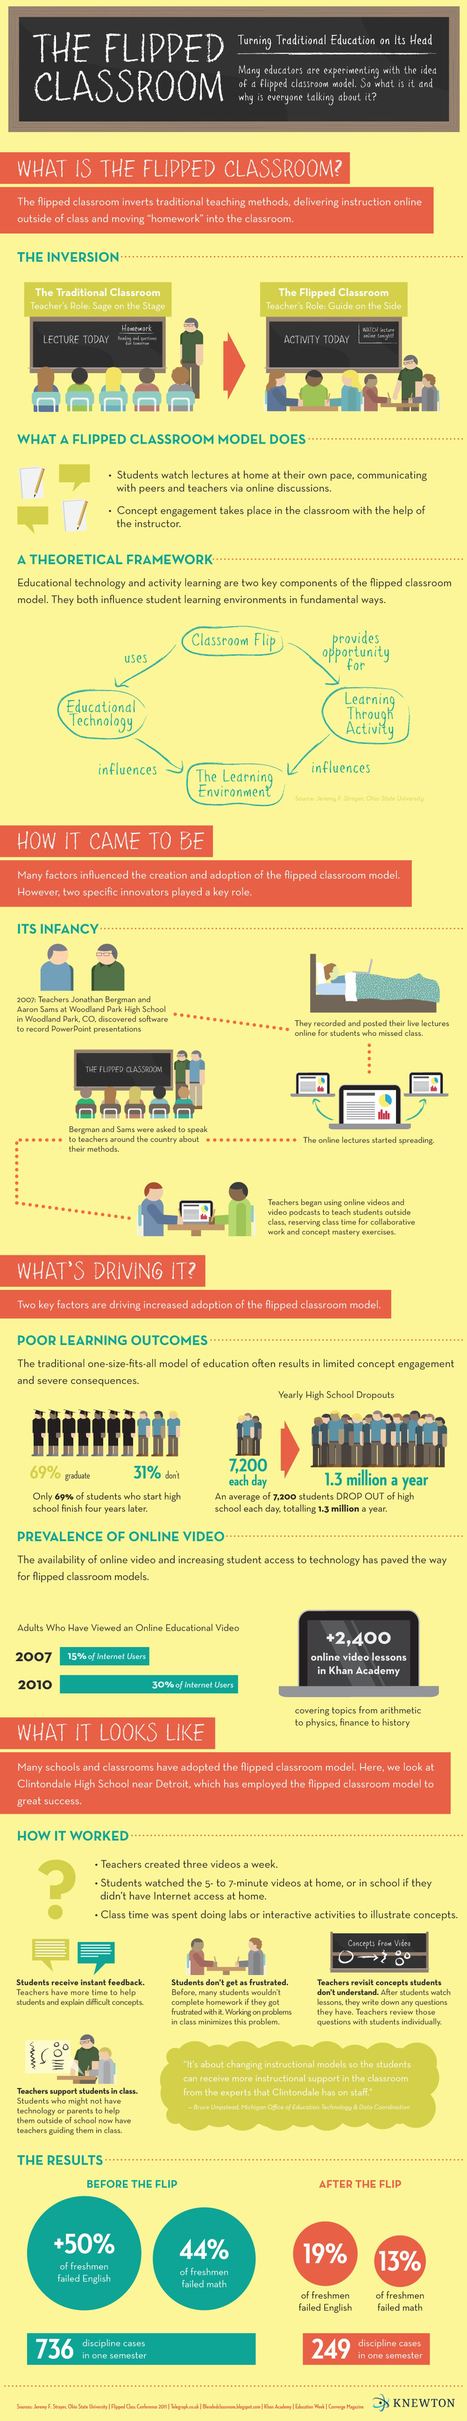 The Flipped Classroom Infographic: Turning Traditional Education ... | Education Greece | Scoop.it